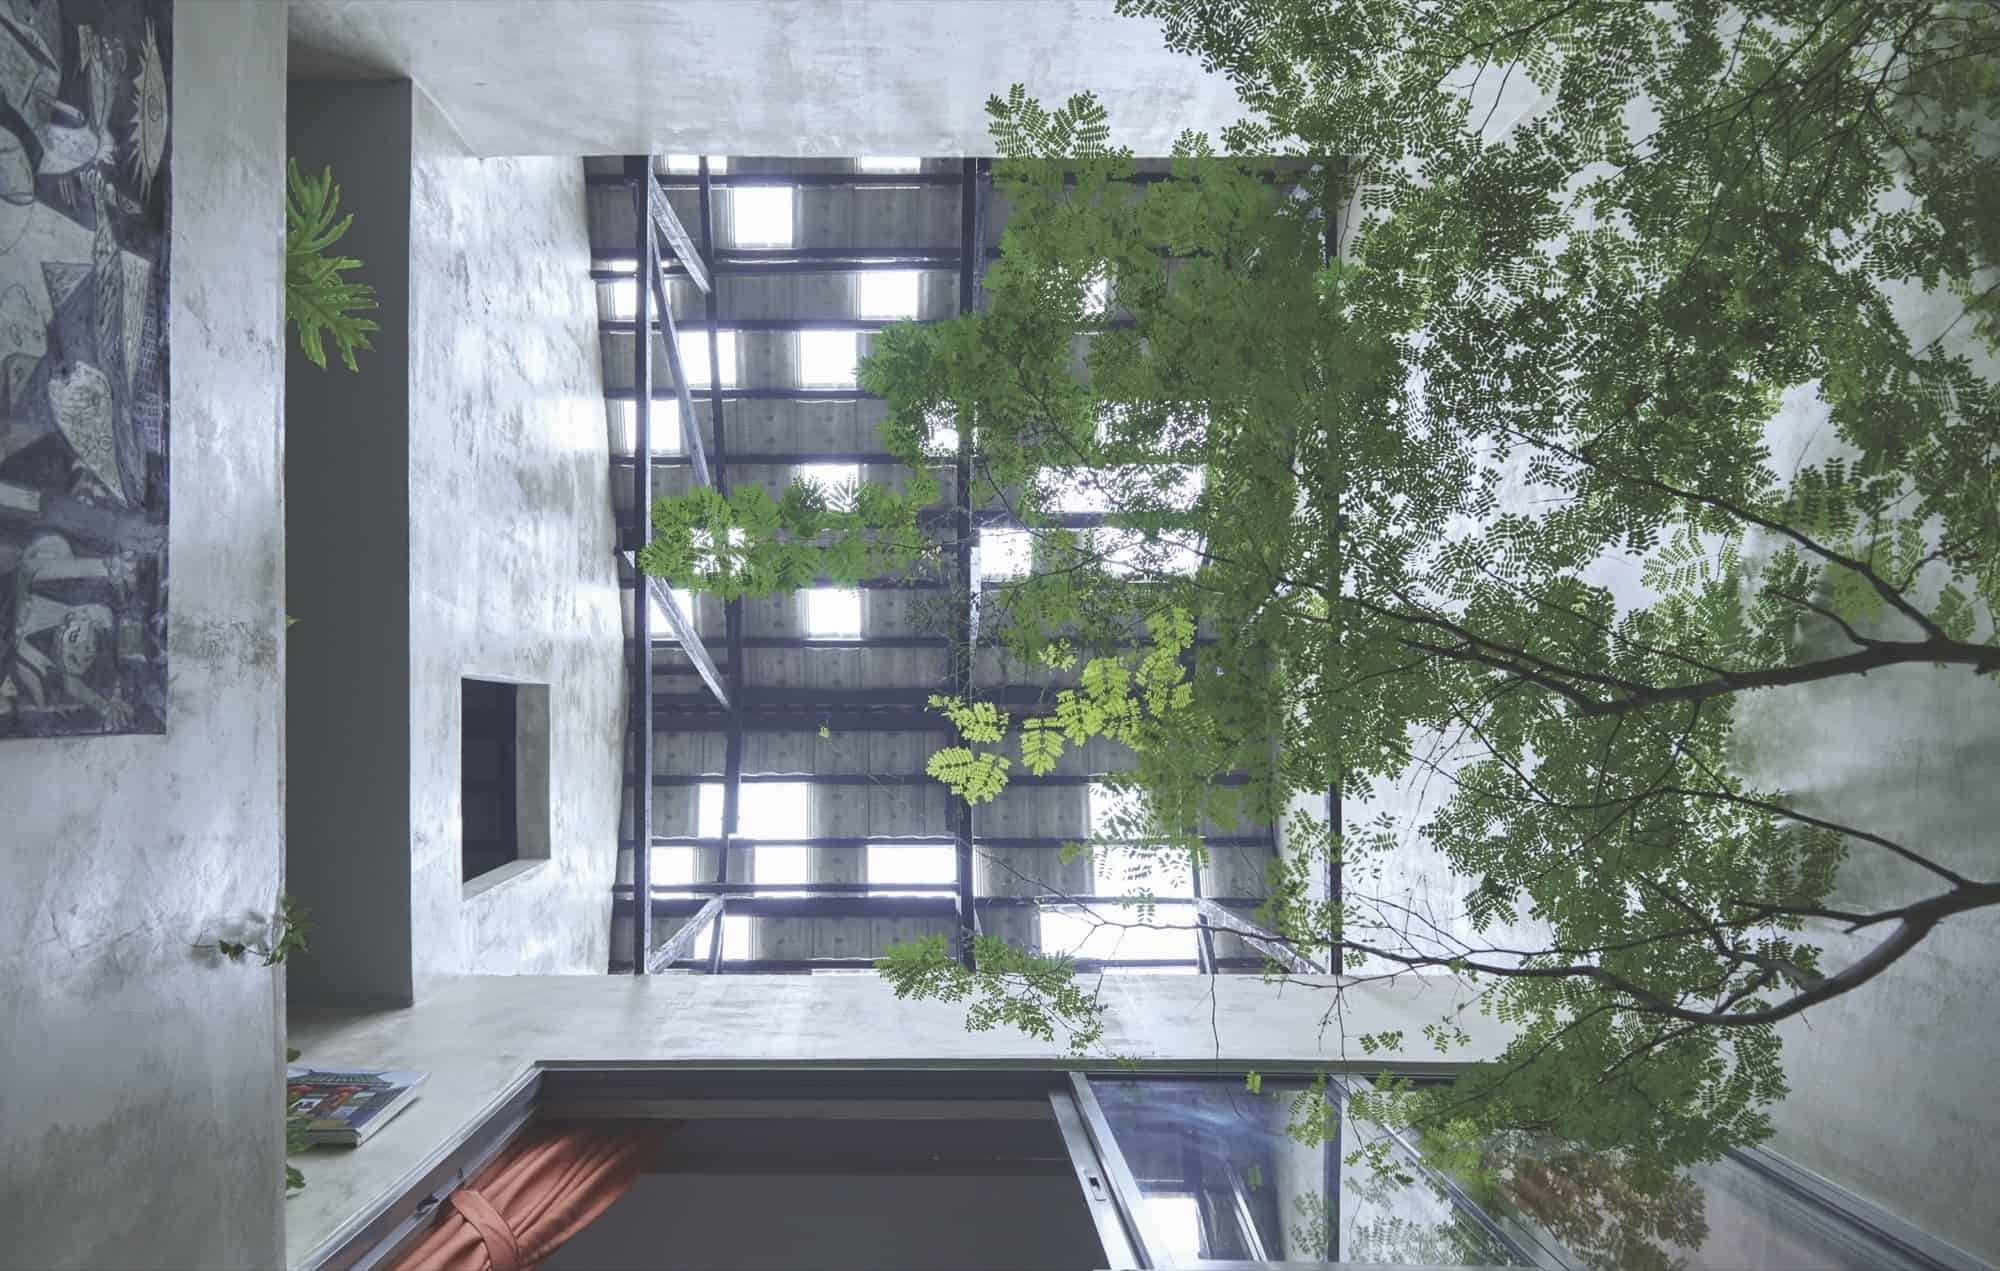 Glomorous Shrubs Create Faux Courtyard Inside House Wow Light Light Shadow Trees Light Shadow Bug Gallery Patterns House Shadow Druid View House curbed In The House Of Light And Shadow